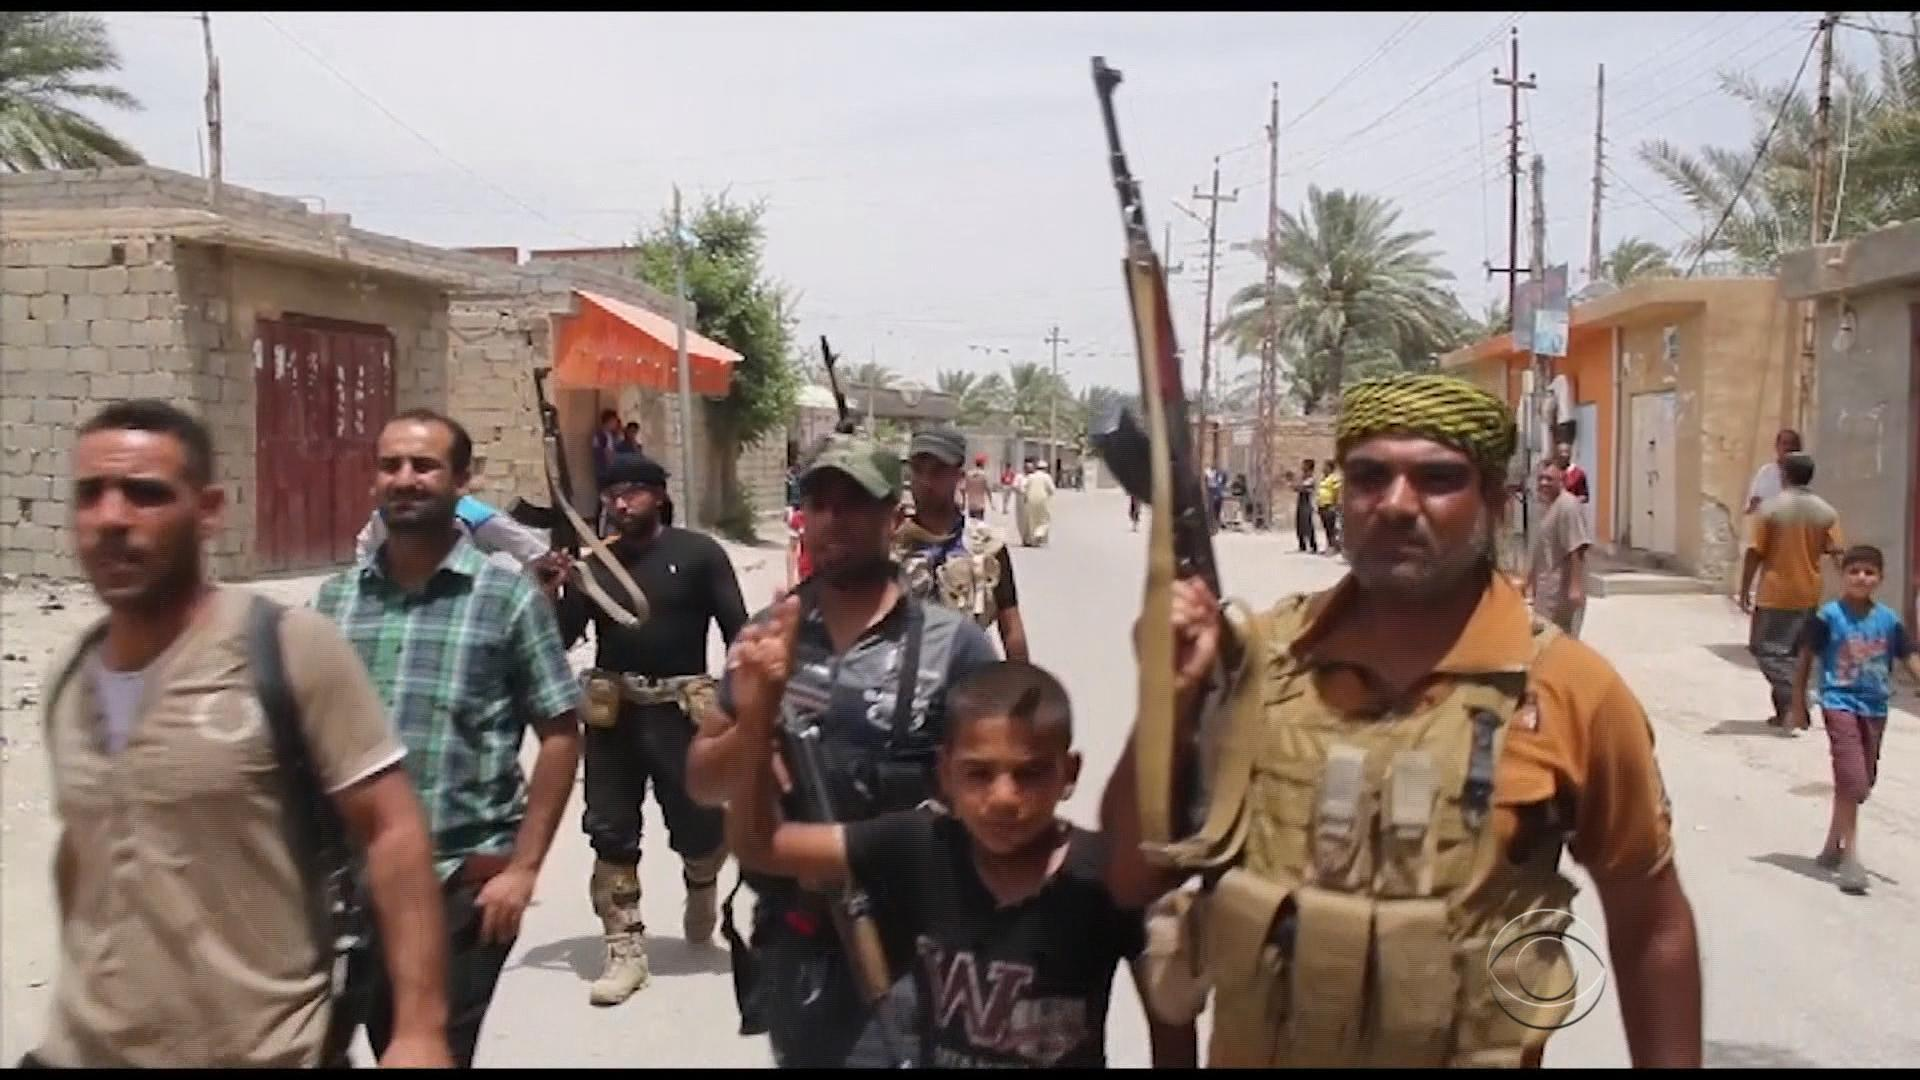 After failures in fight against ISIS, new battle looms